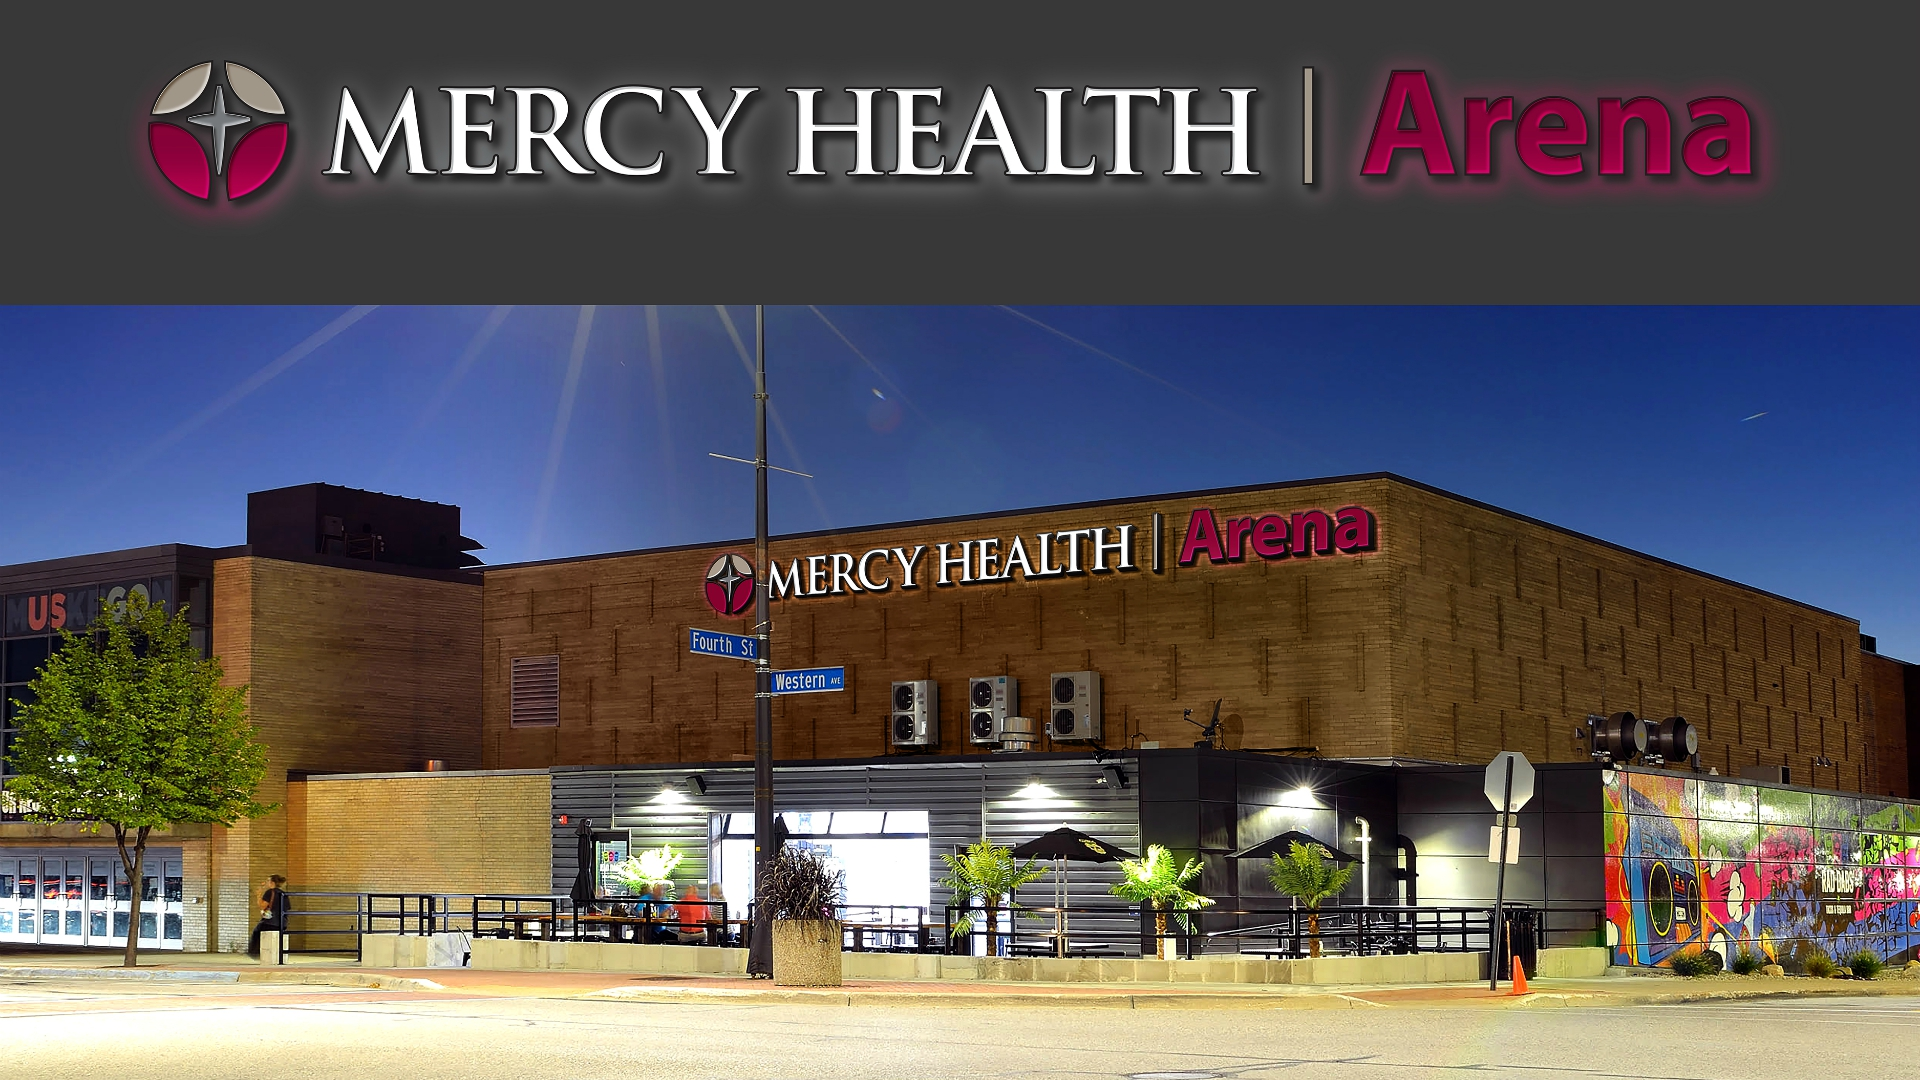 Mercy Health Arena rendering